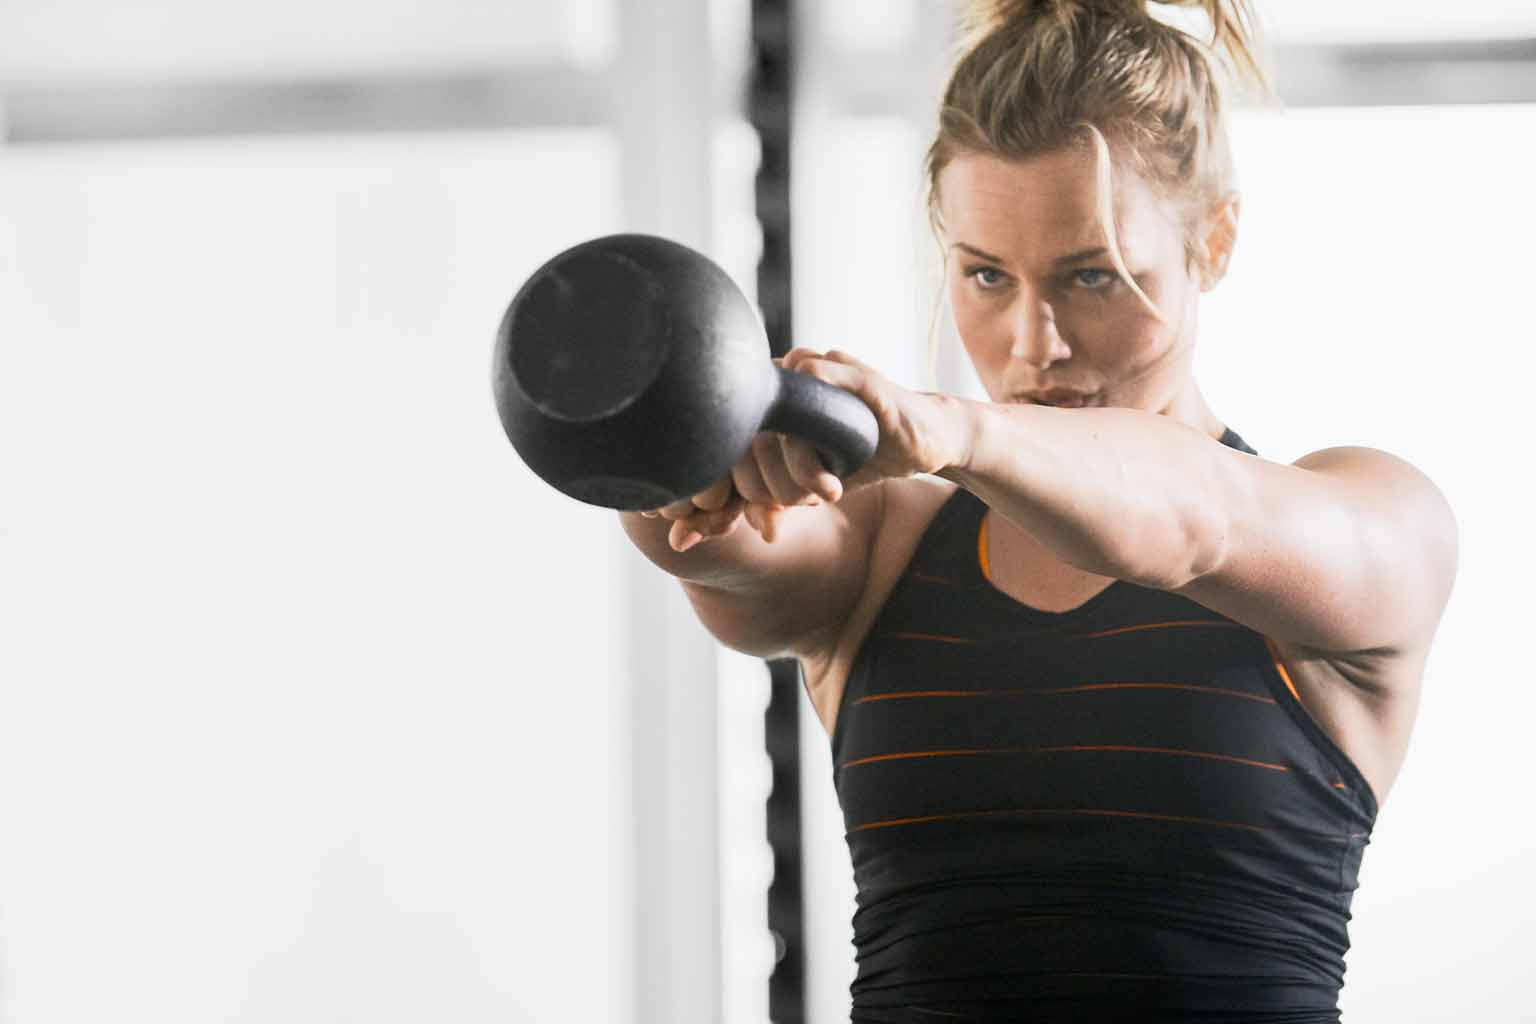 A woman in a black tank top with orange stripes holds a kettlebell in the up position of a kettlebell swing